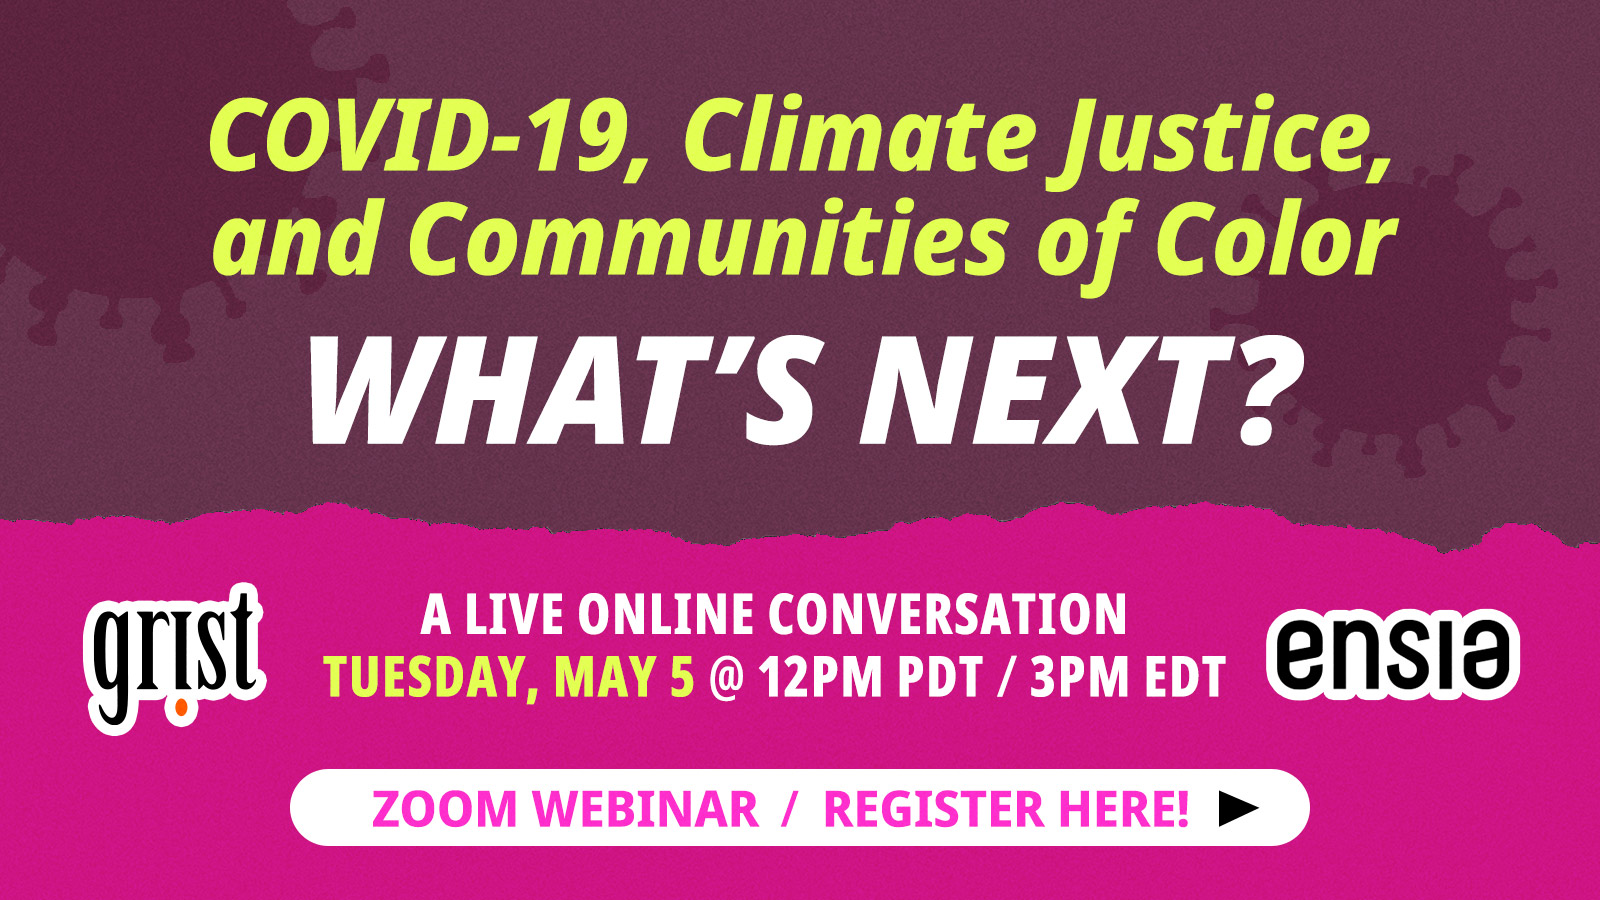 COVID-19, Climate Justice, and Communities of Color. What's next?